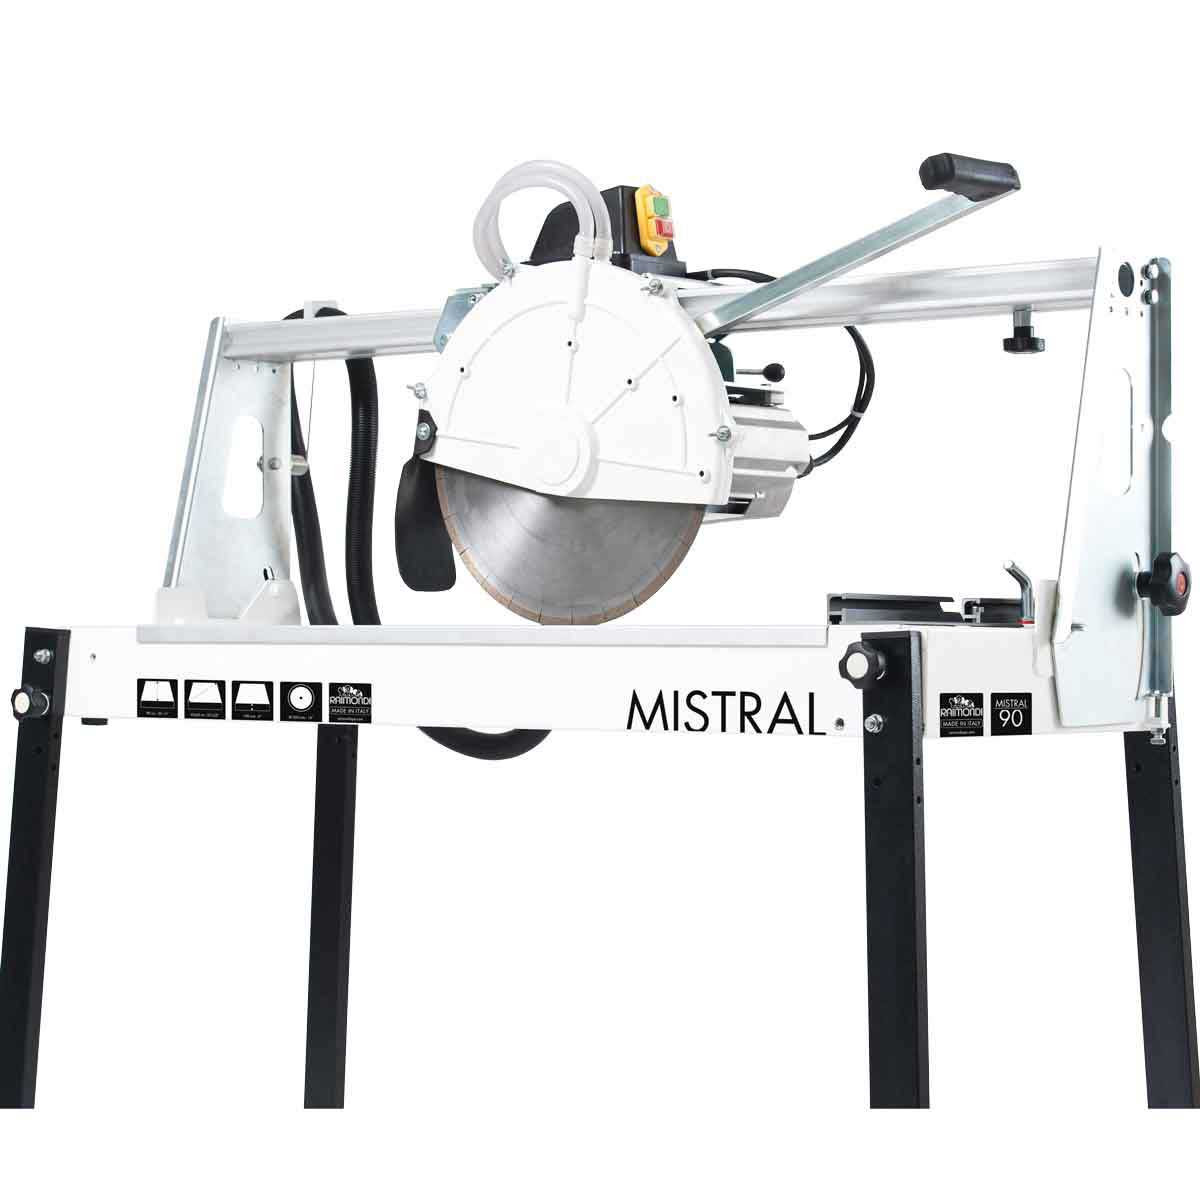 Raimondi Mistral 90 rail saw with extended handle